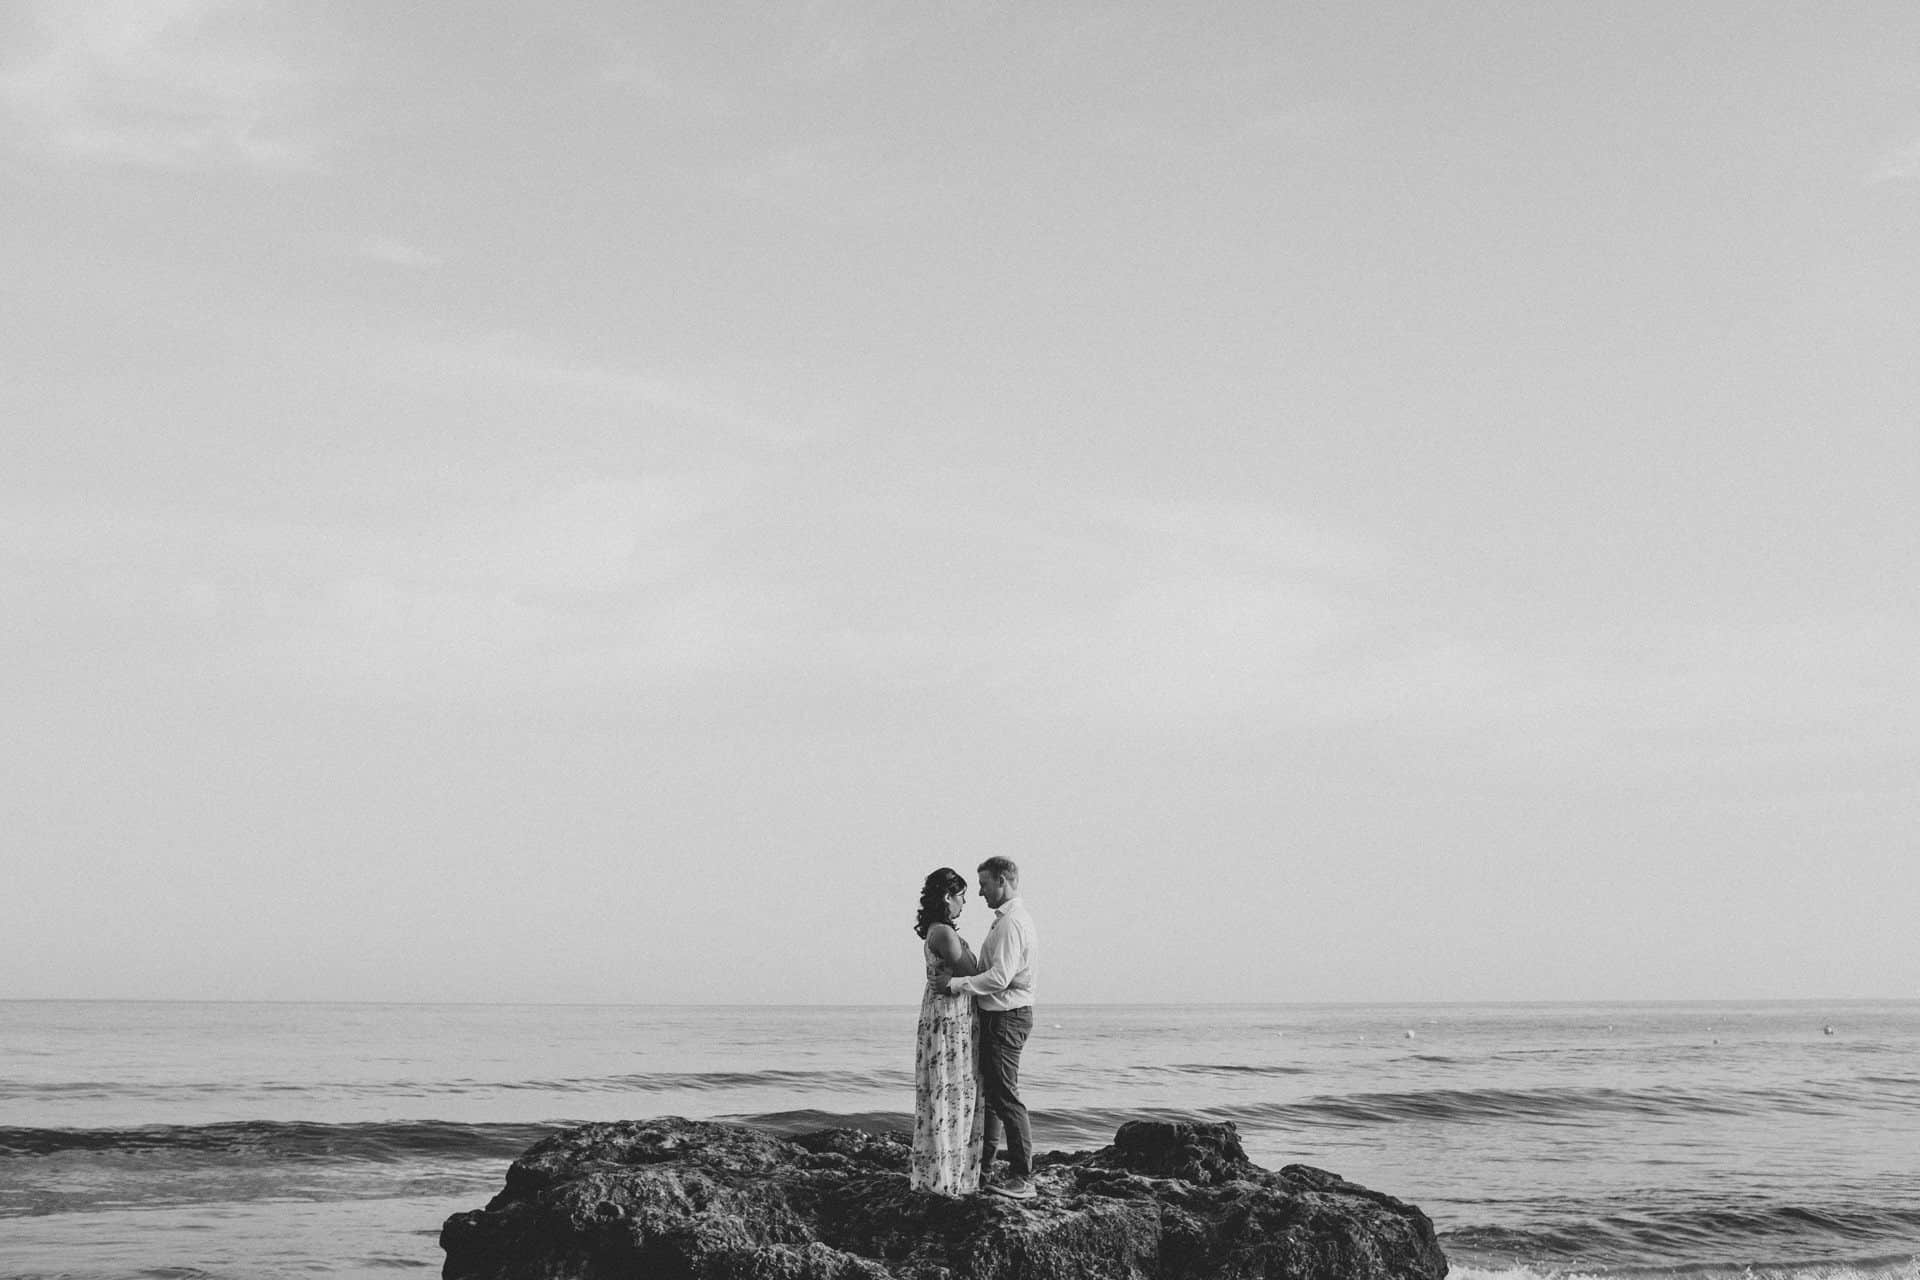 Best wedding images of the year (074 of 316)